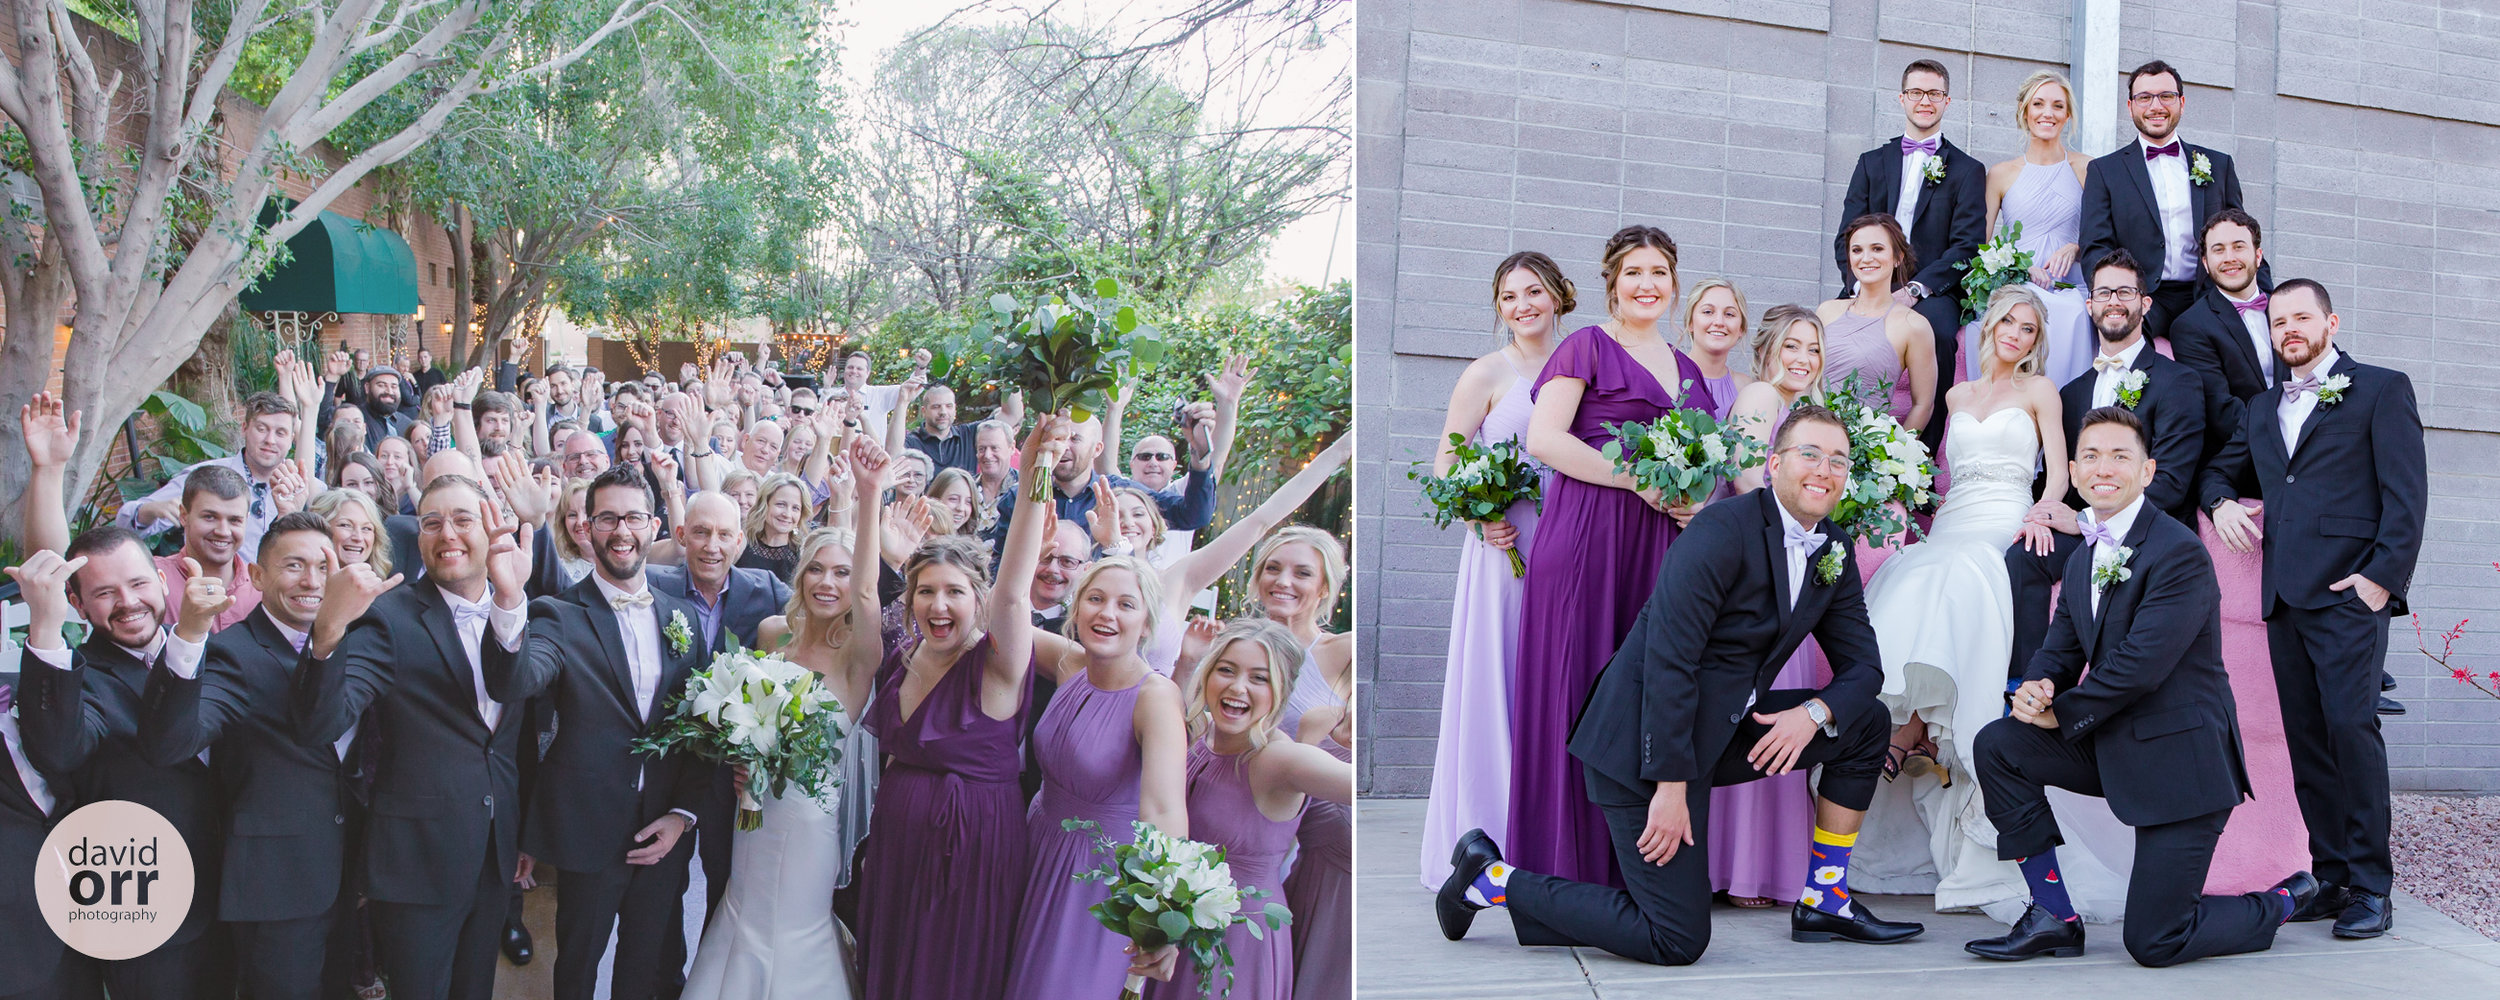 DavidOrrPhotography_Mesa-Regency-Garden-Wedding6.jpg